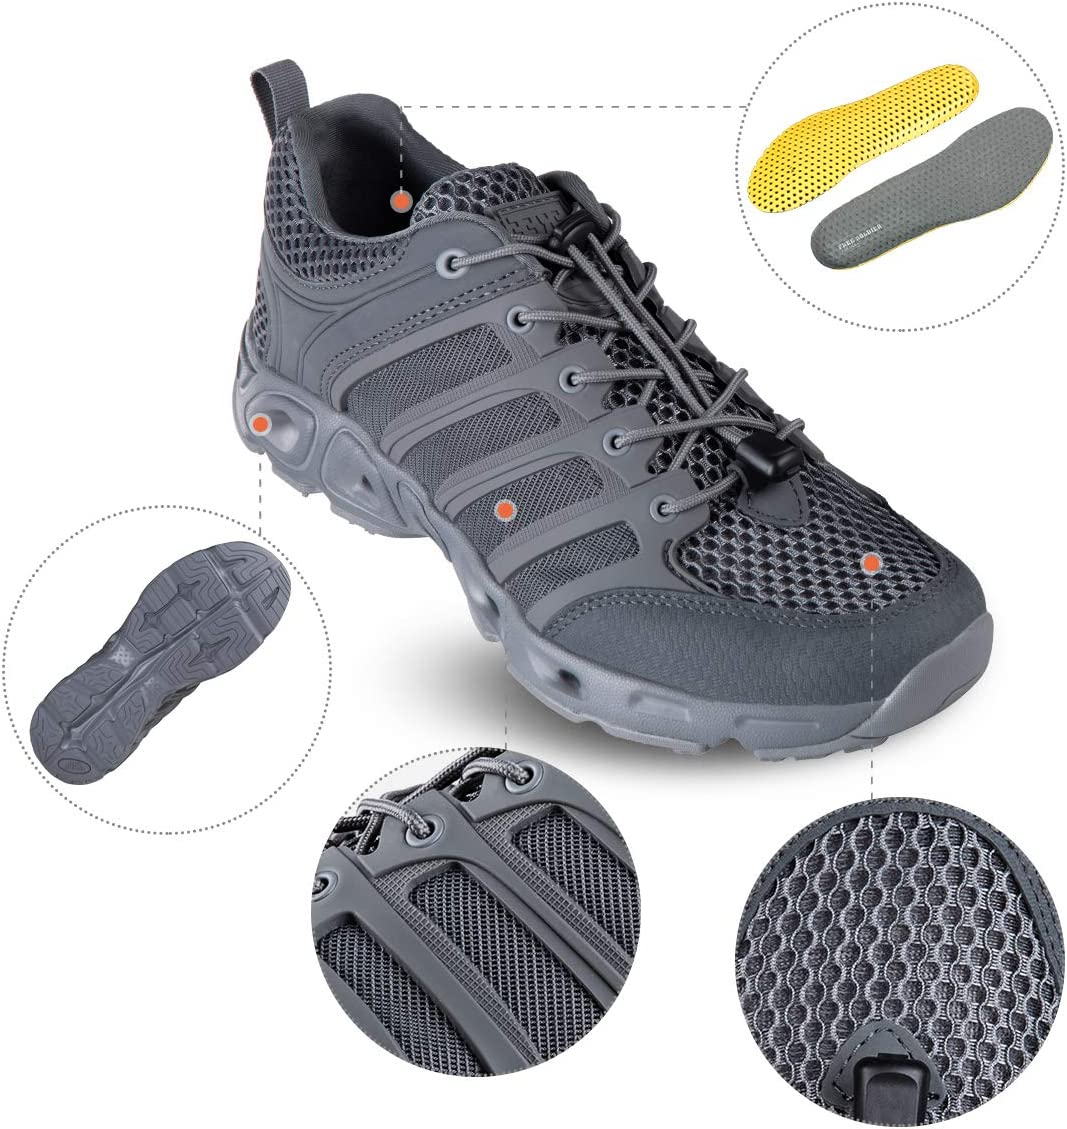 FREE SOLDIER Outdoor Mens Quick Drying Lightweight Sport Hiking Water Shoes